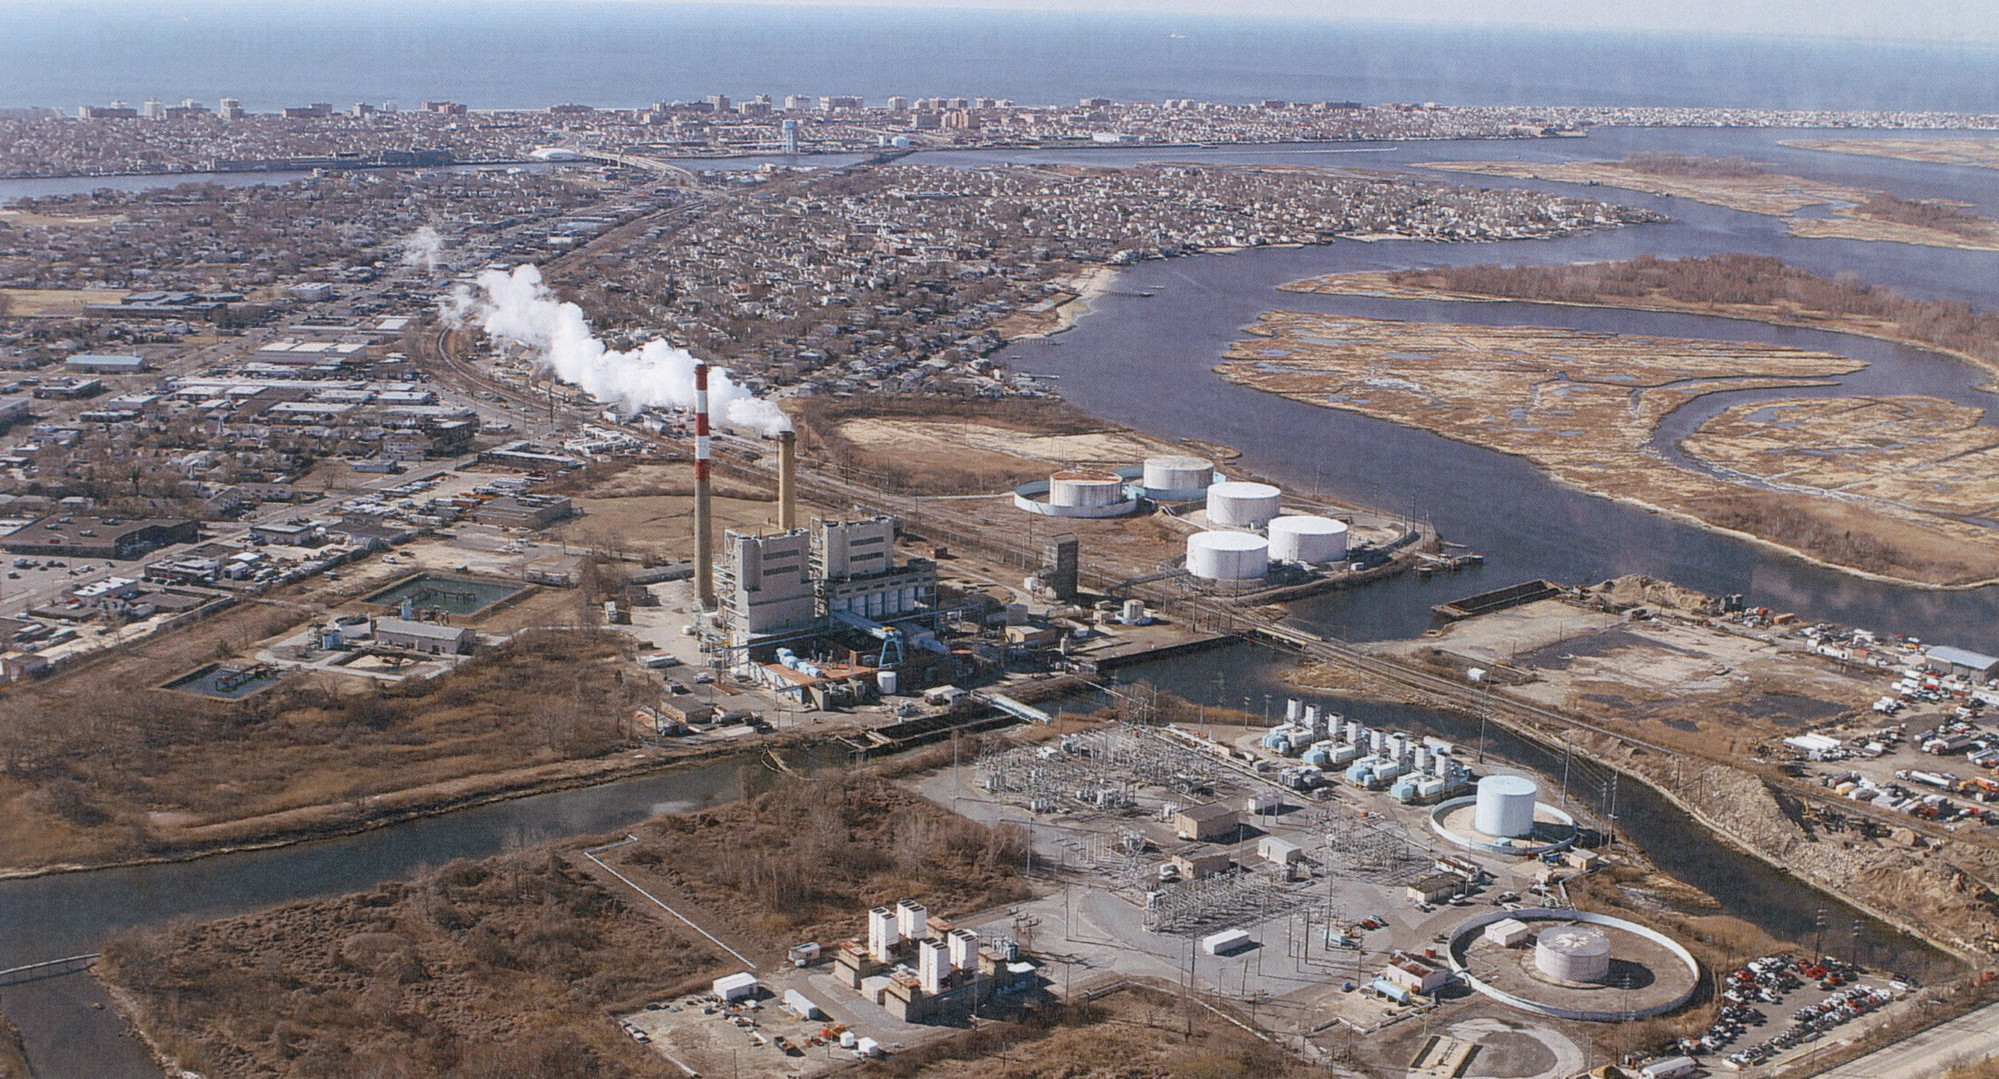 The E.F. Barrett Power Station juxtaposed with the proposed Island Park Energy Center.